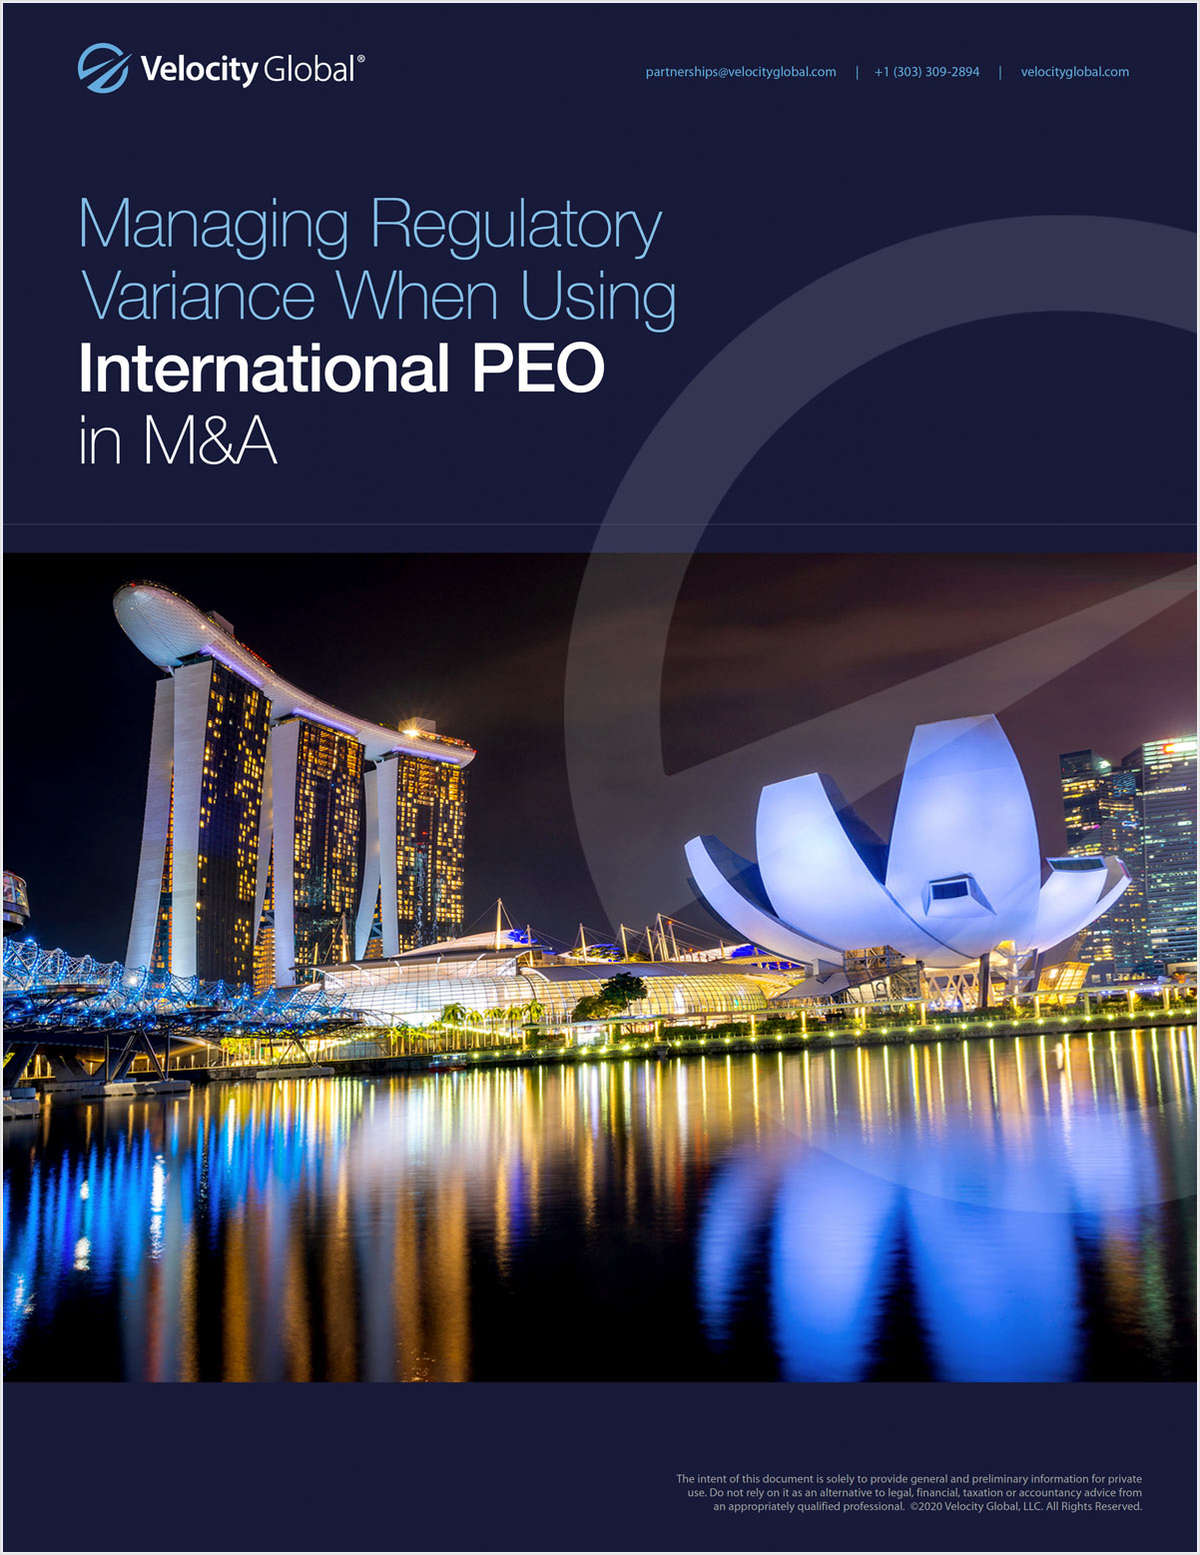 Managing Regulatory Variance When Using International PEO in M&A